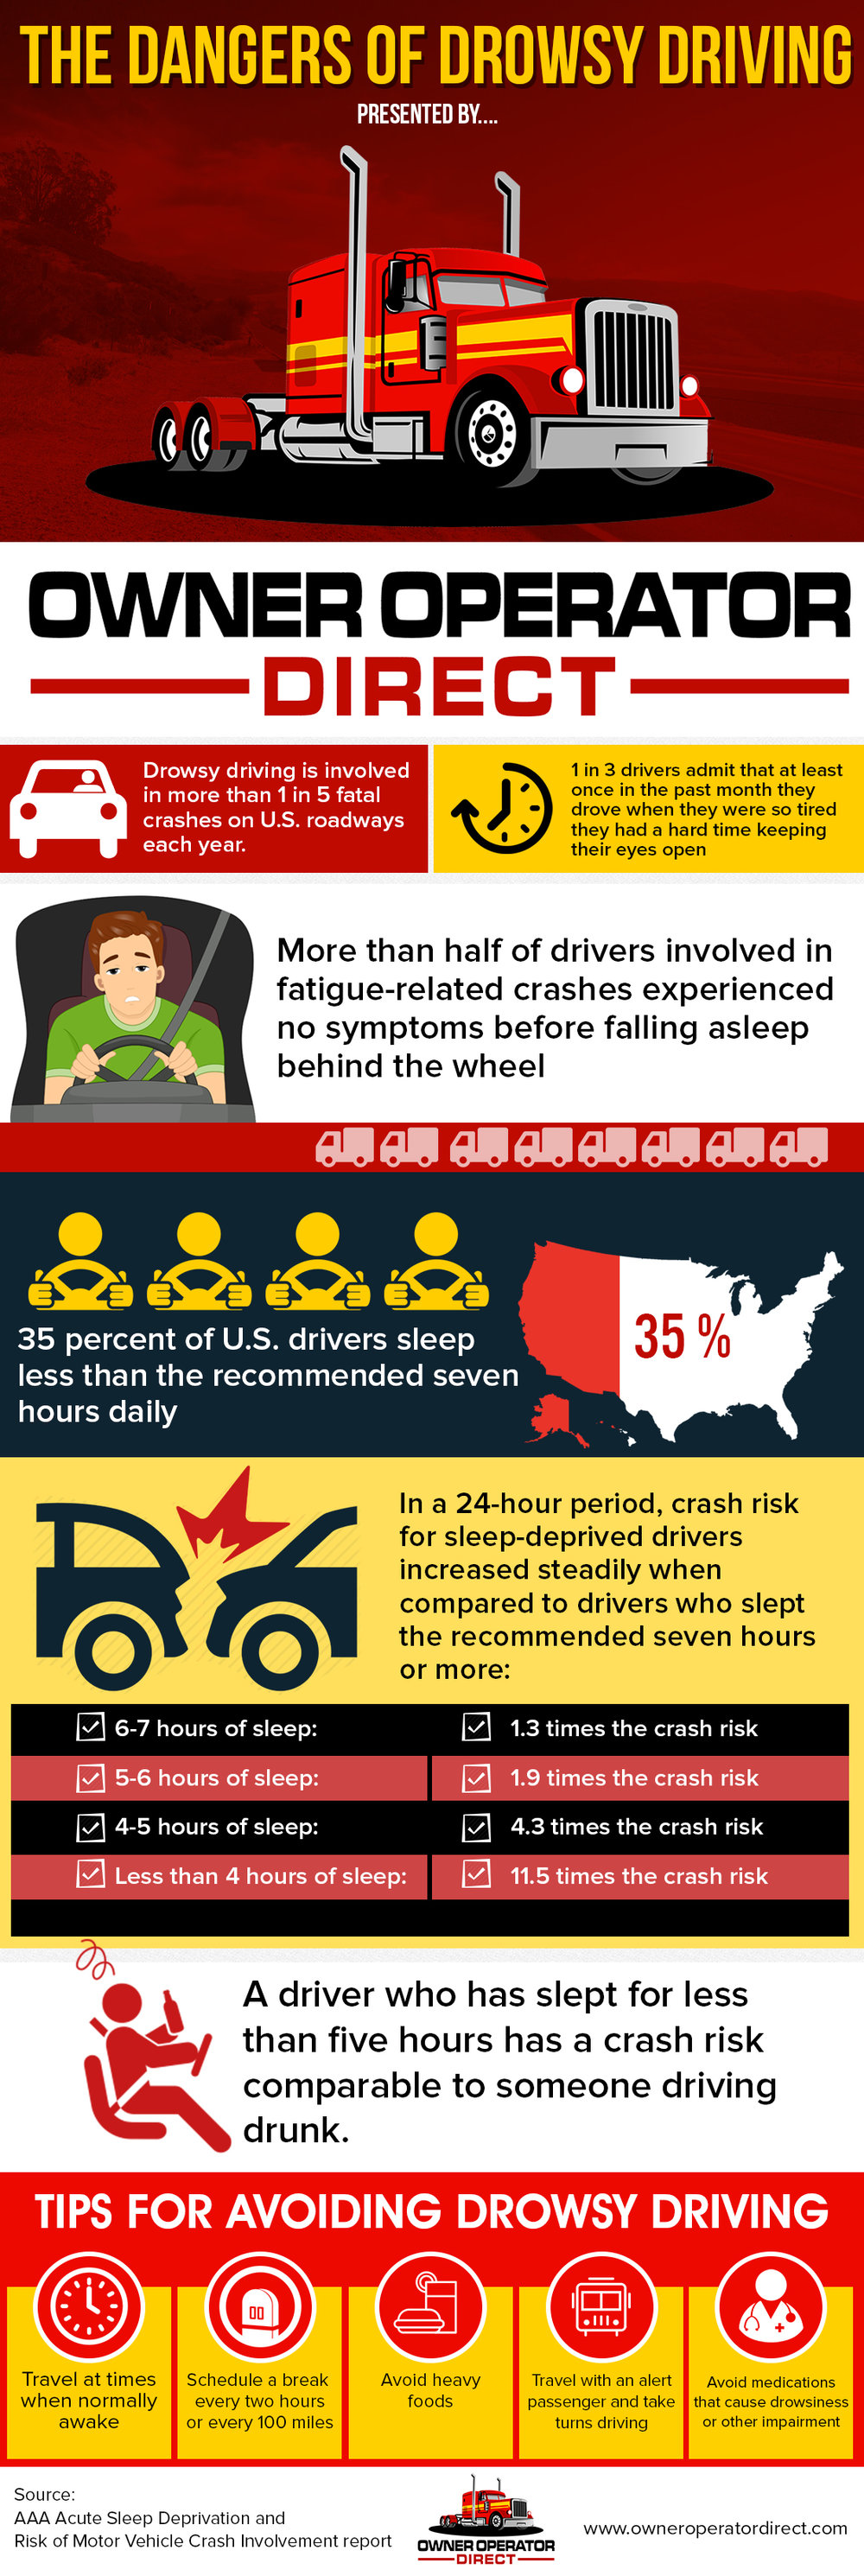 Drowsy Driving Infographic from https://www.owneroperatordirect.com